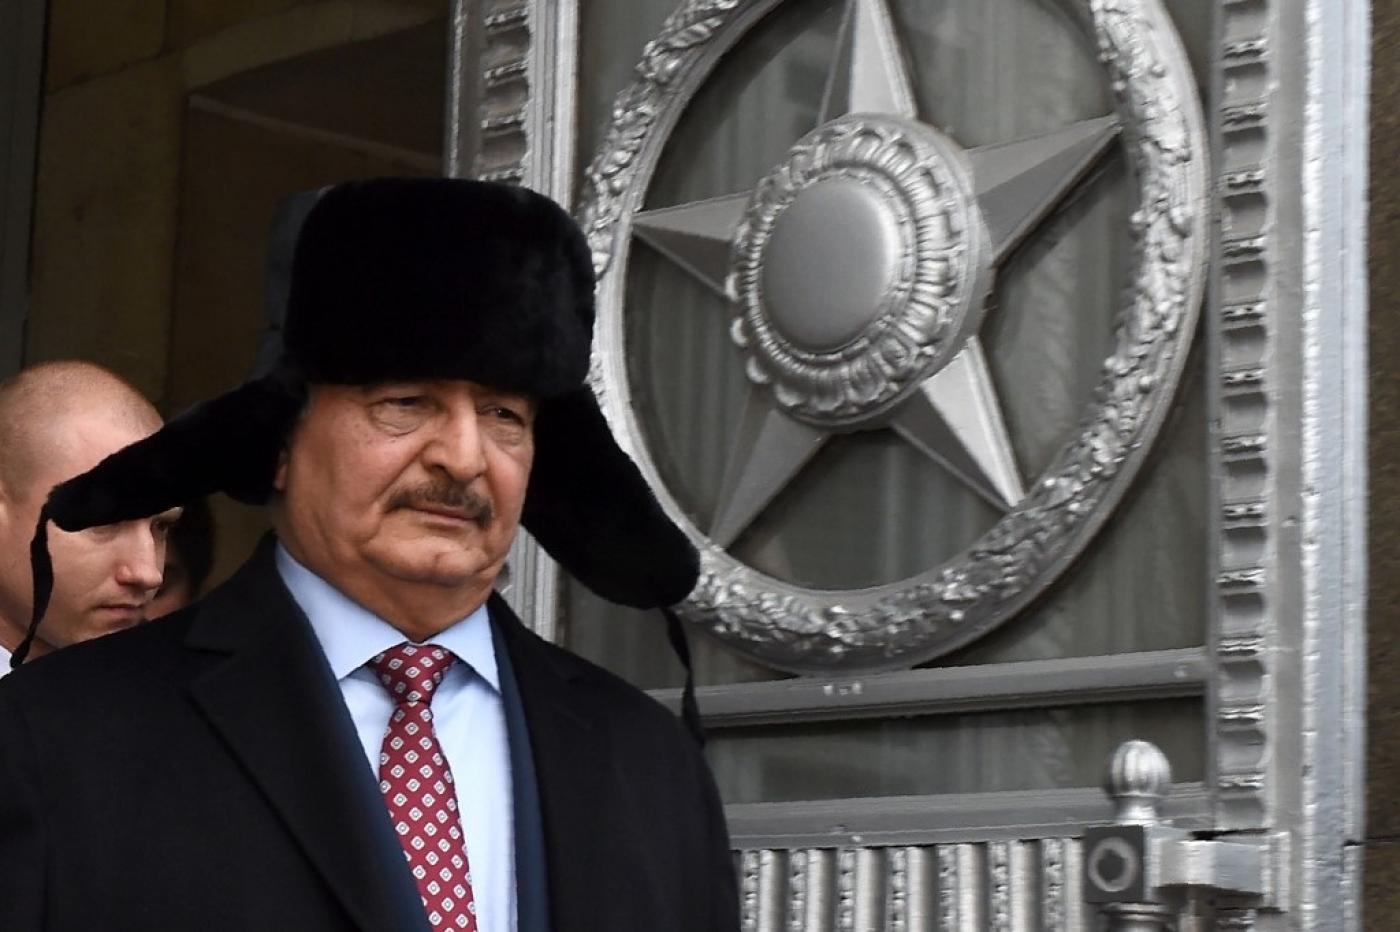 Khalifa Haftar leaves Russia's foreign ministry after a meeting in Moscow in 2016 (AFP)